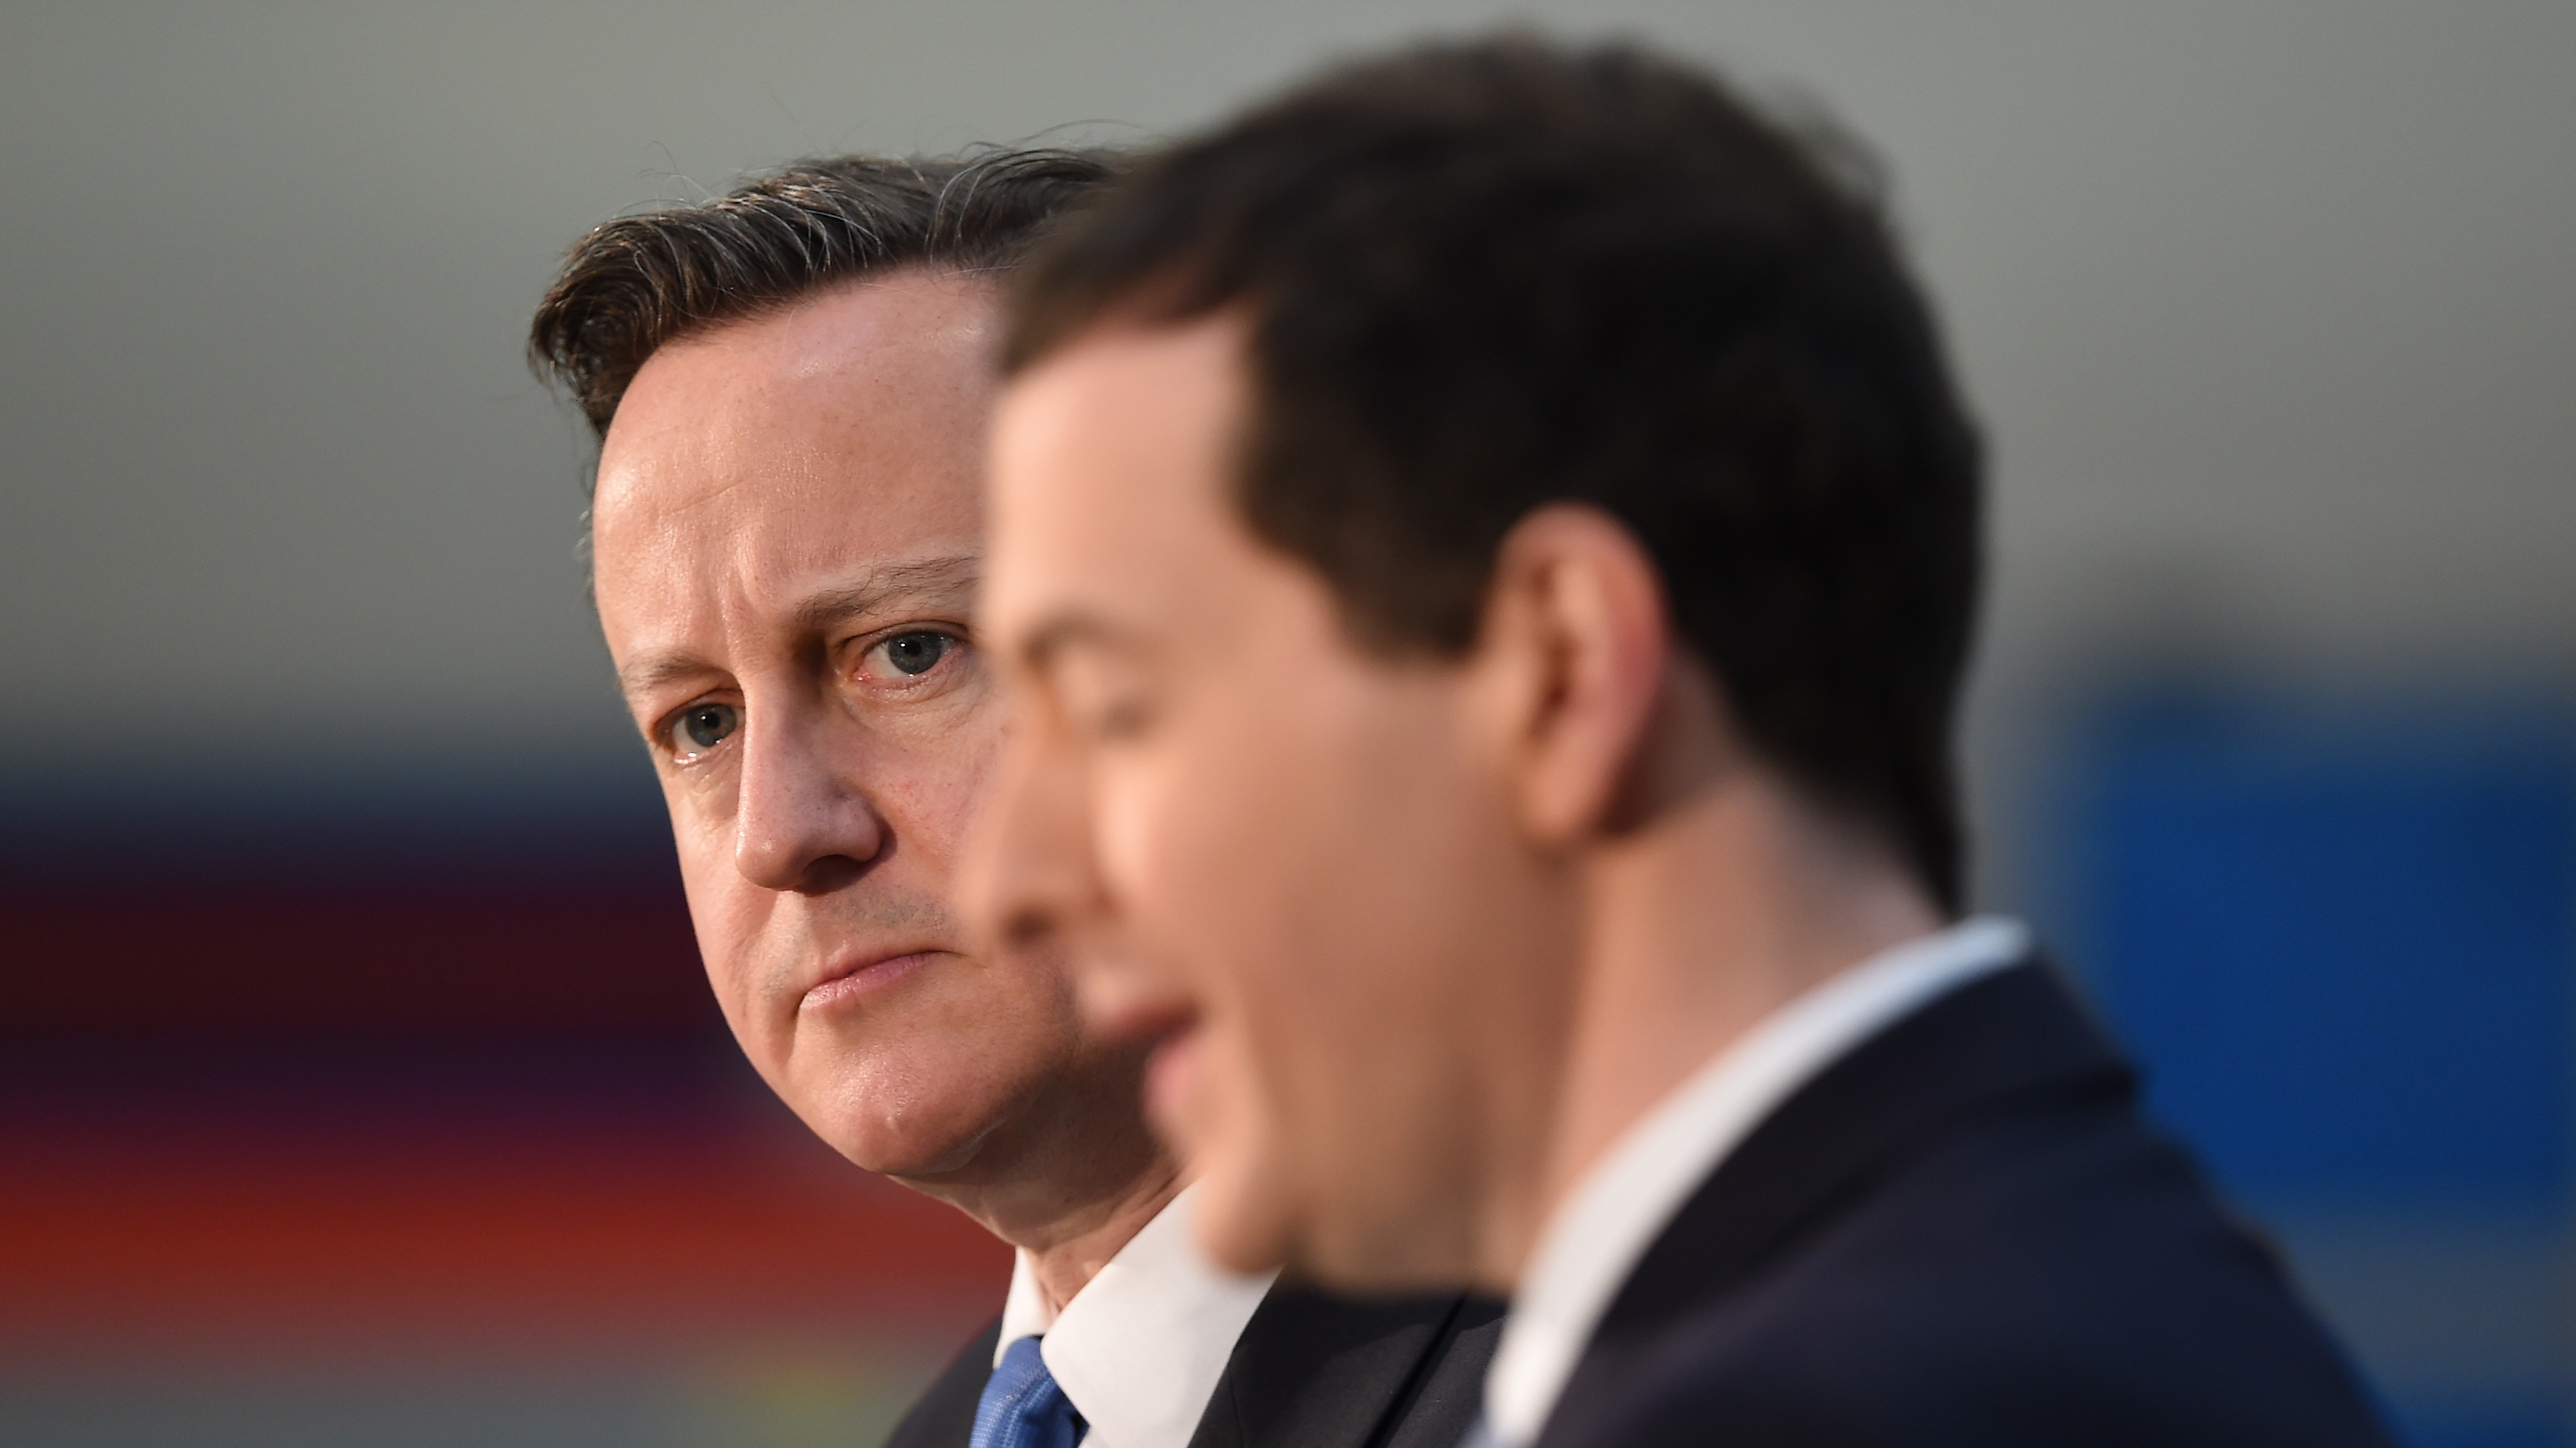 Cameron and Osborne on inheritance tax shake-up